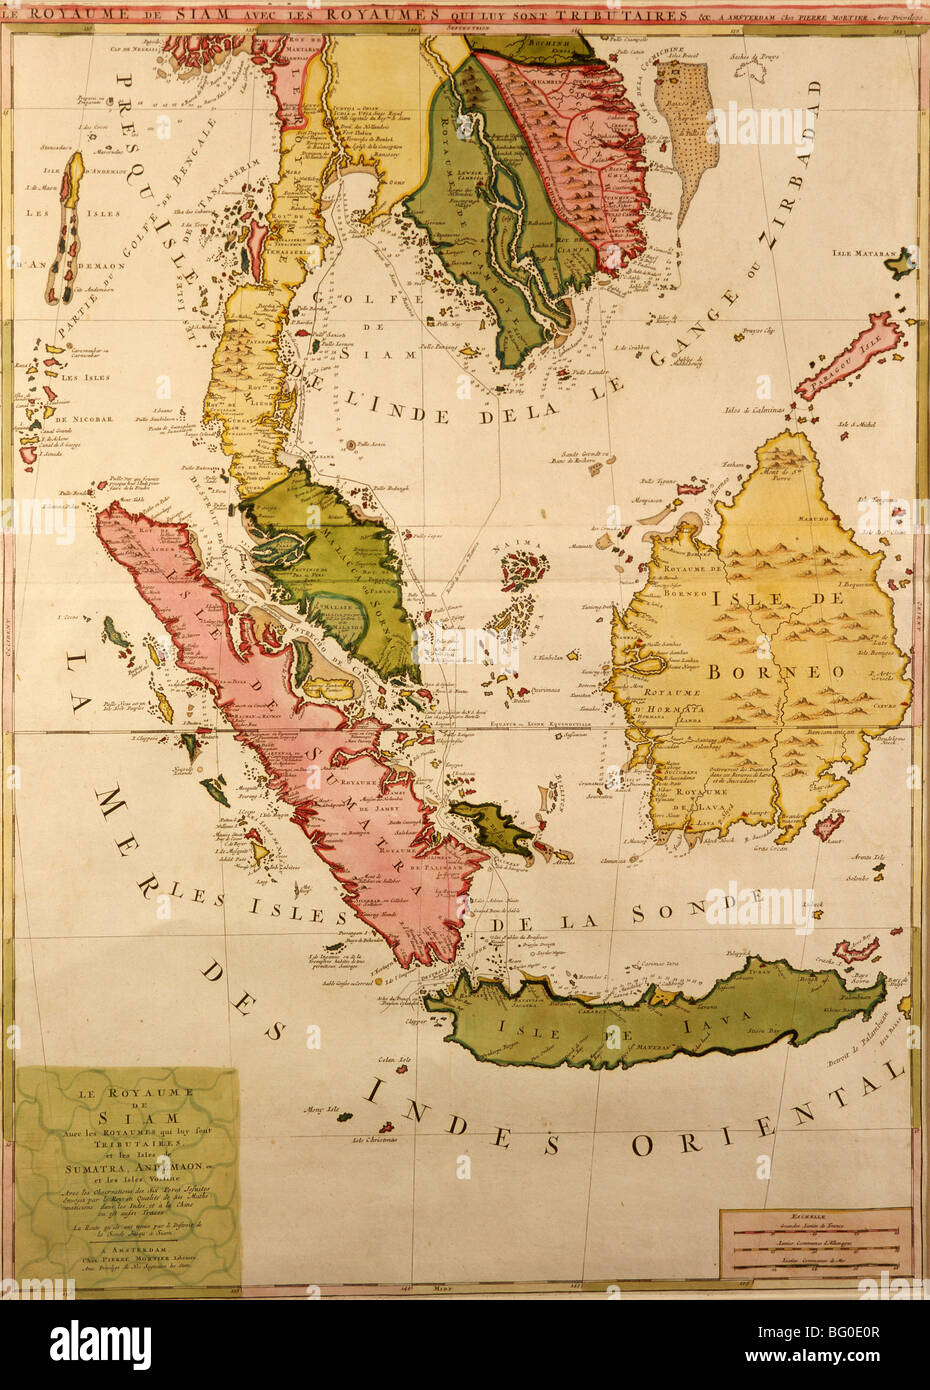 Old Map of Southeast Asia, Asia - Stock Image